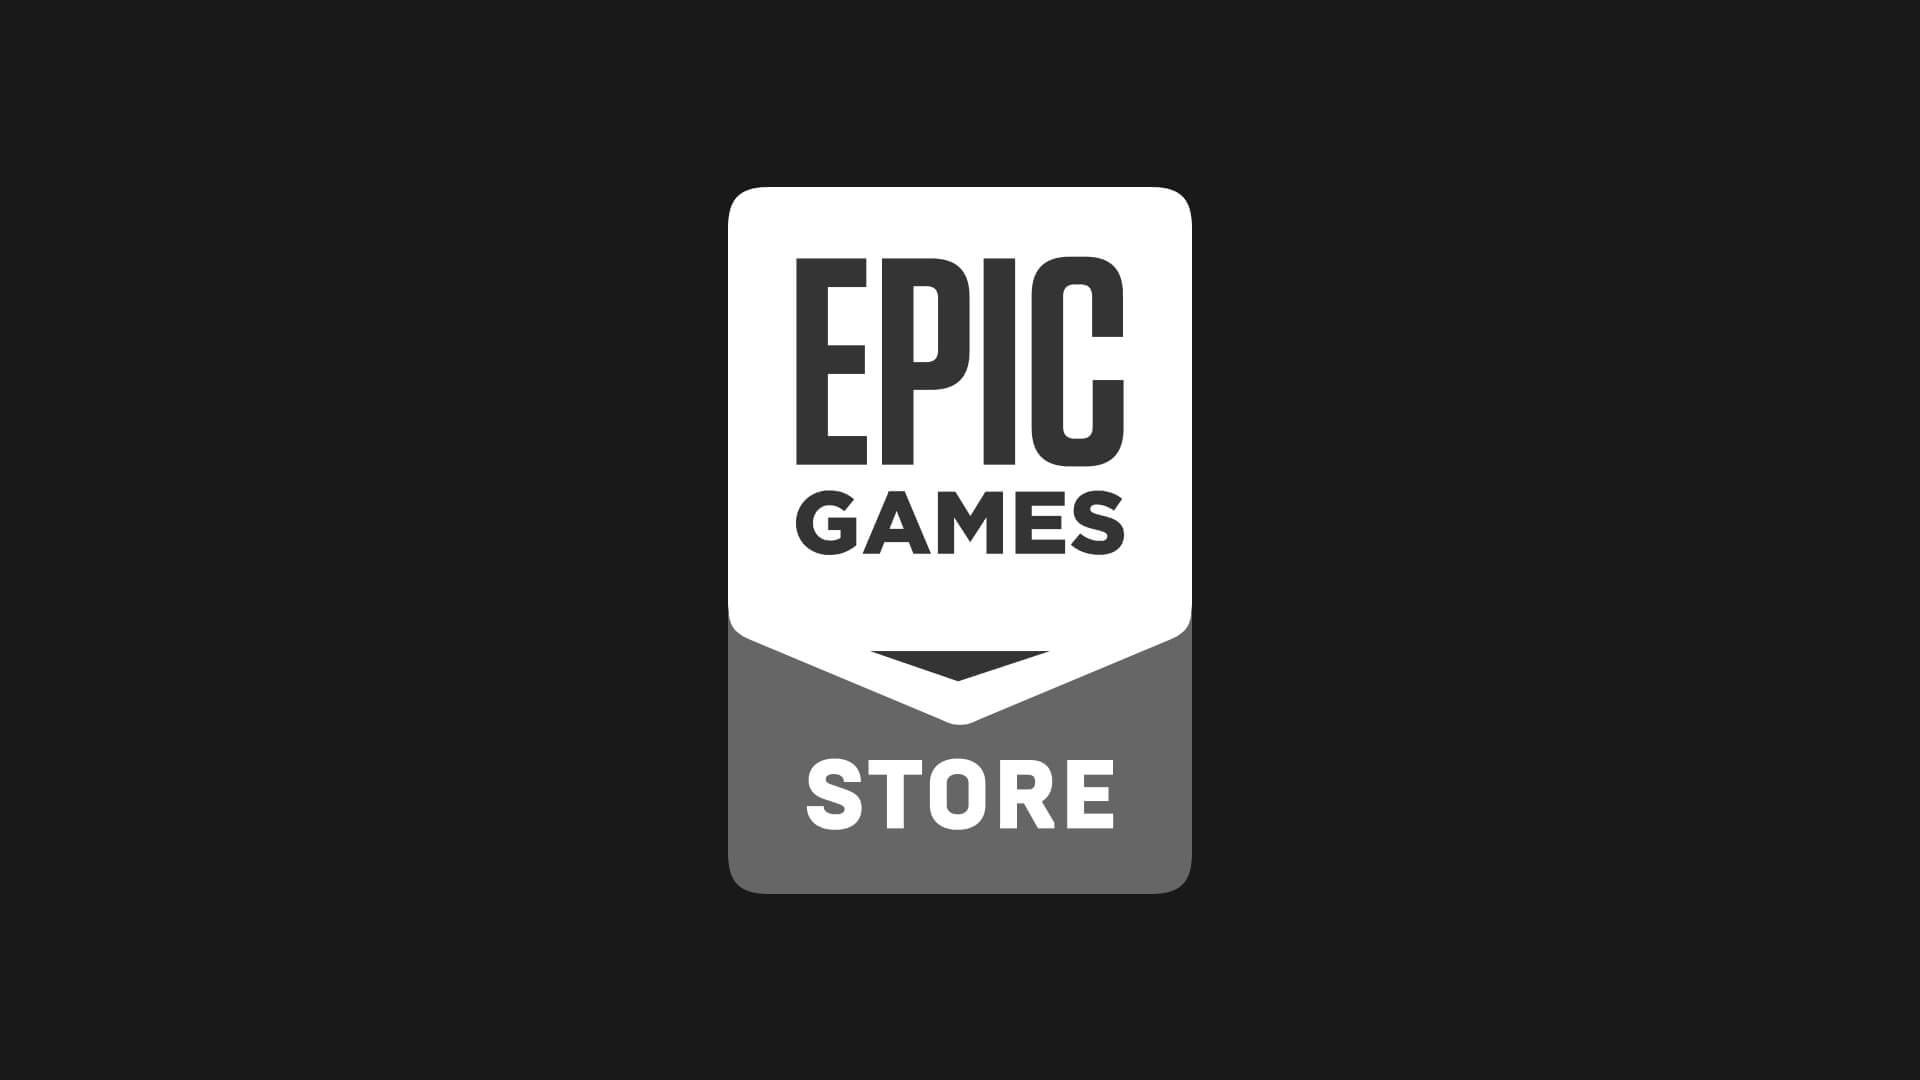 Fortnite Refund System Epic Games Epic Games Store Refund Policy Epic Games